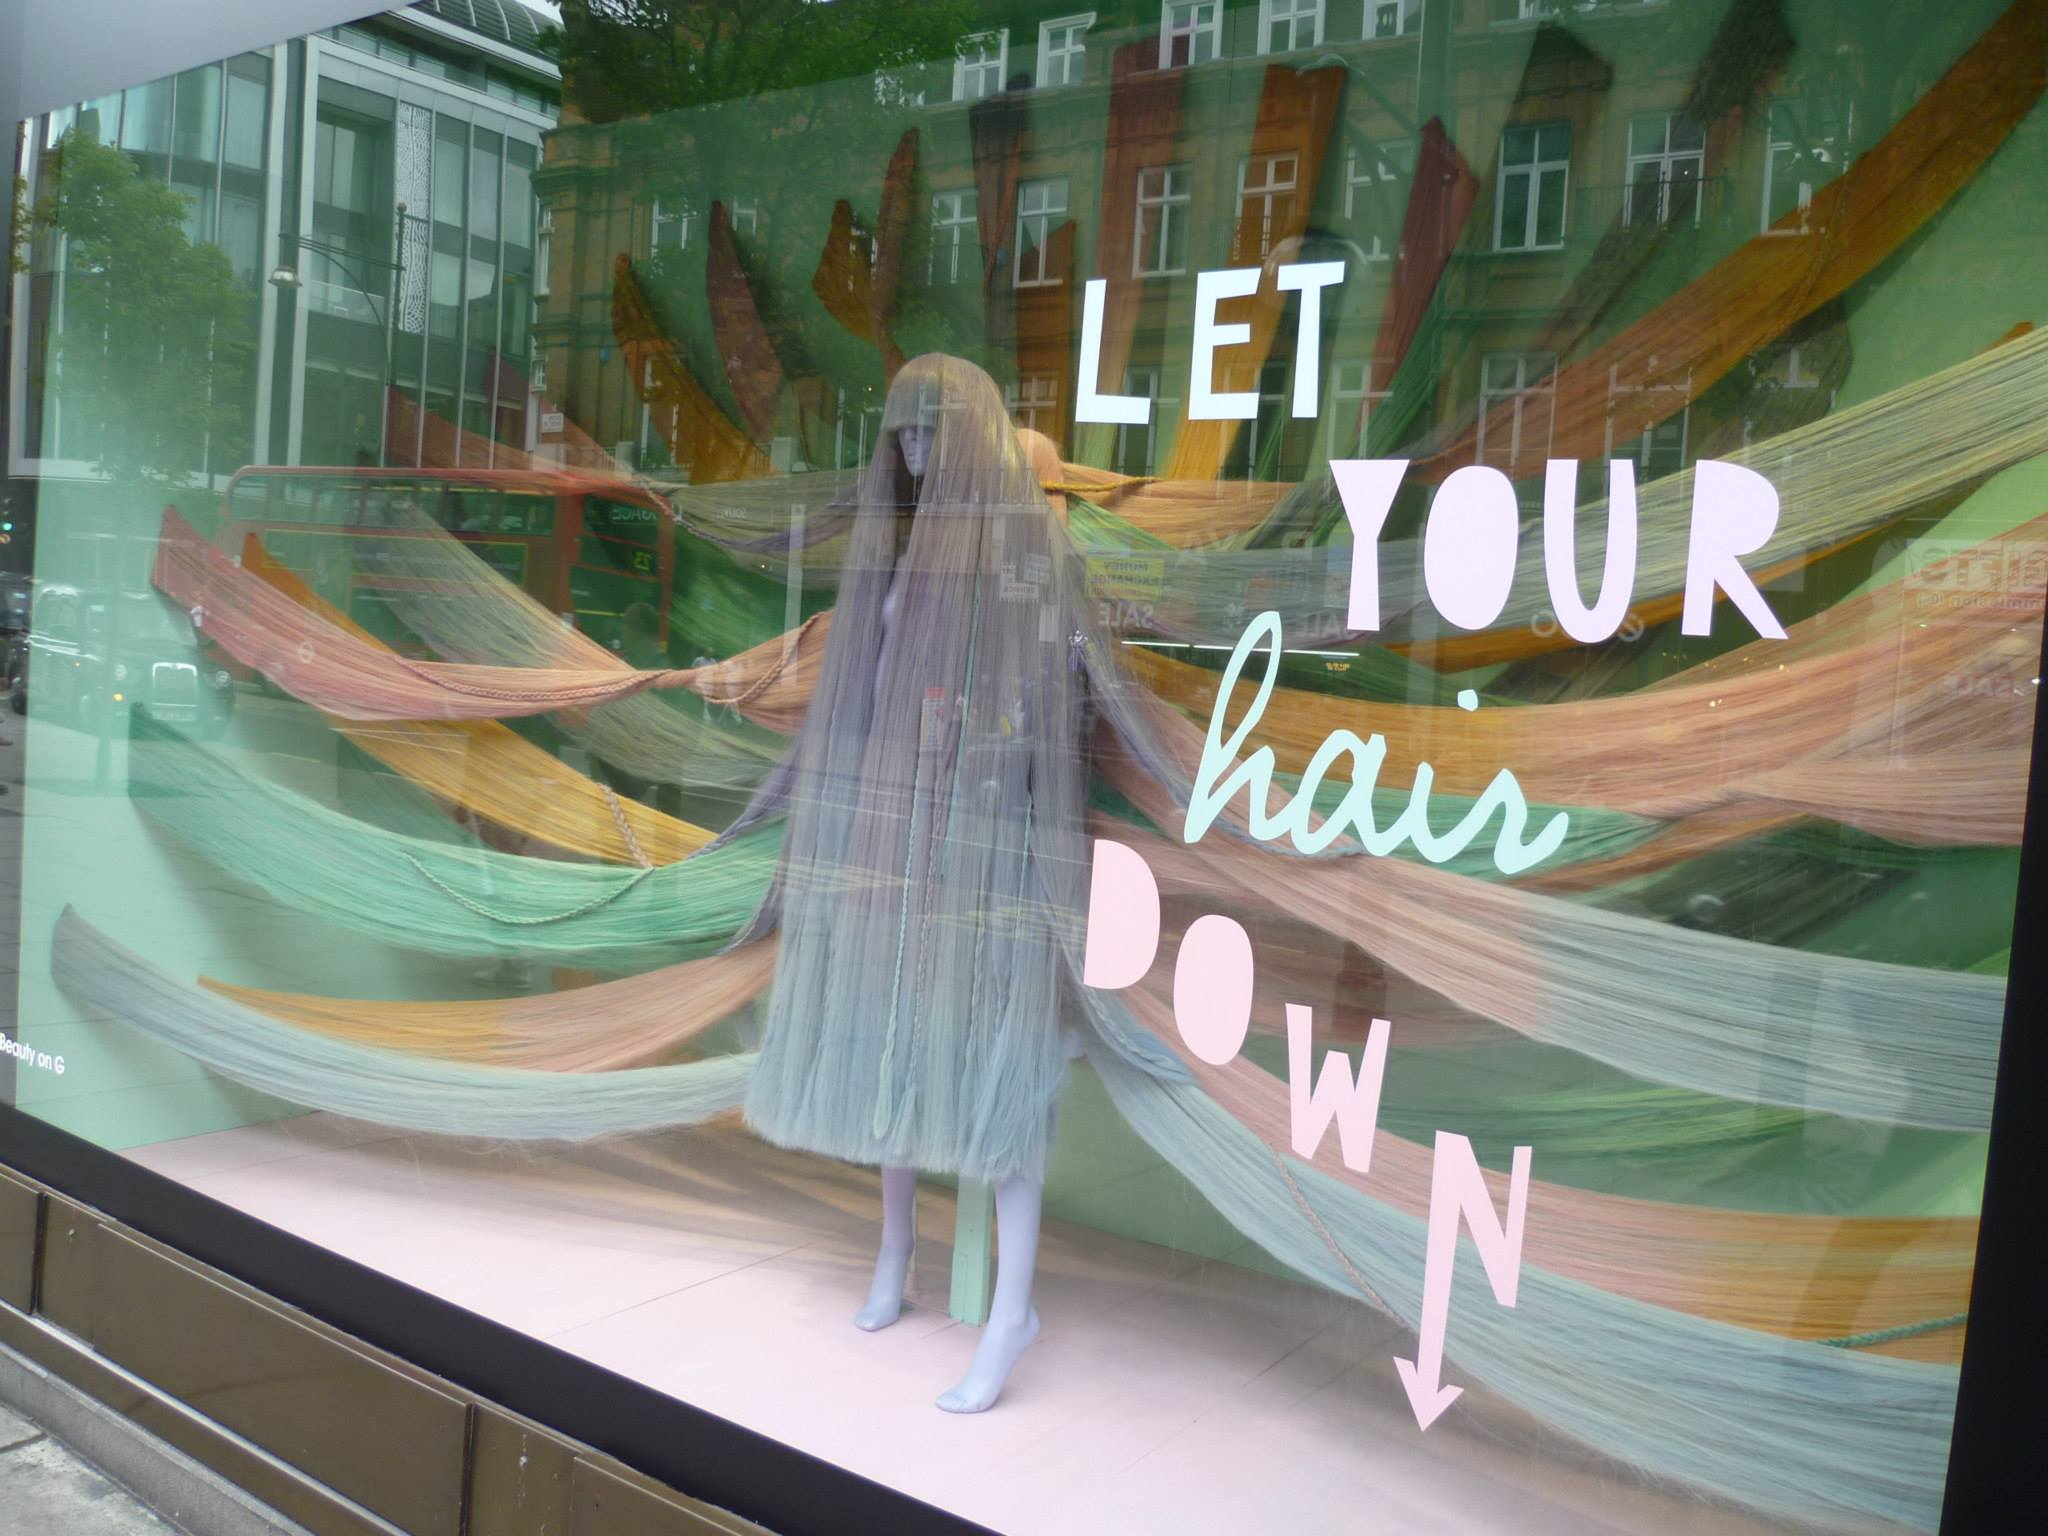 selfridges-beautiful-windows-letyourhairdown